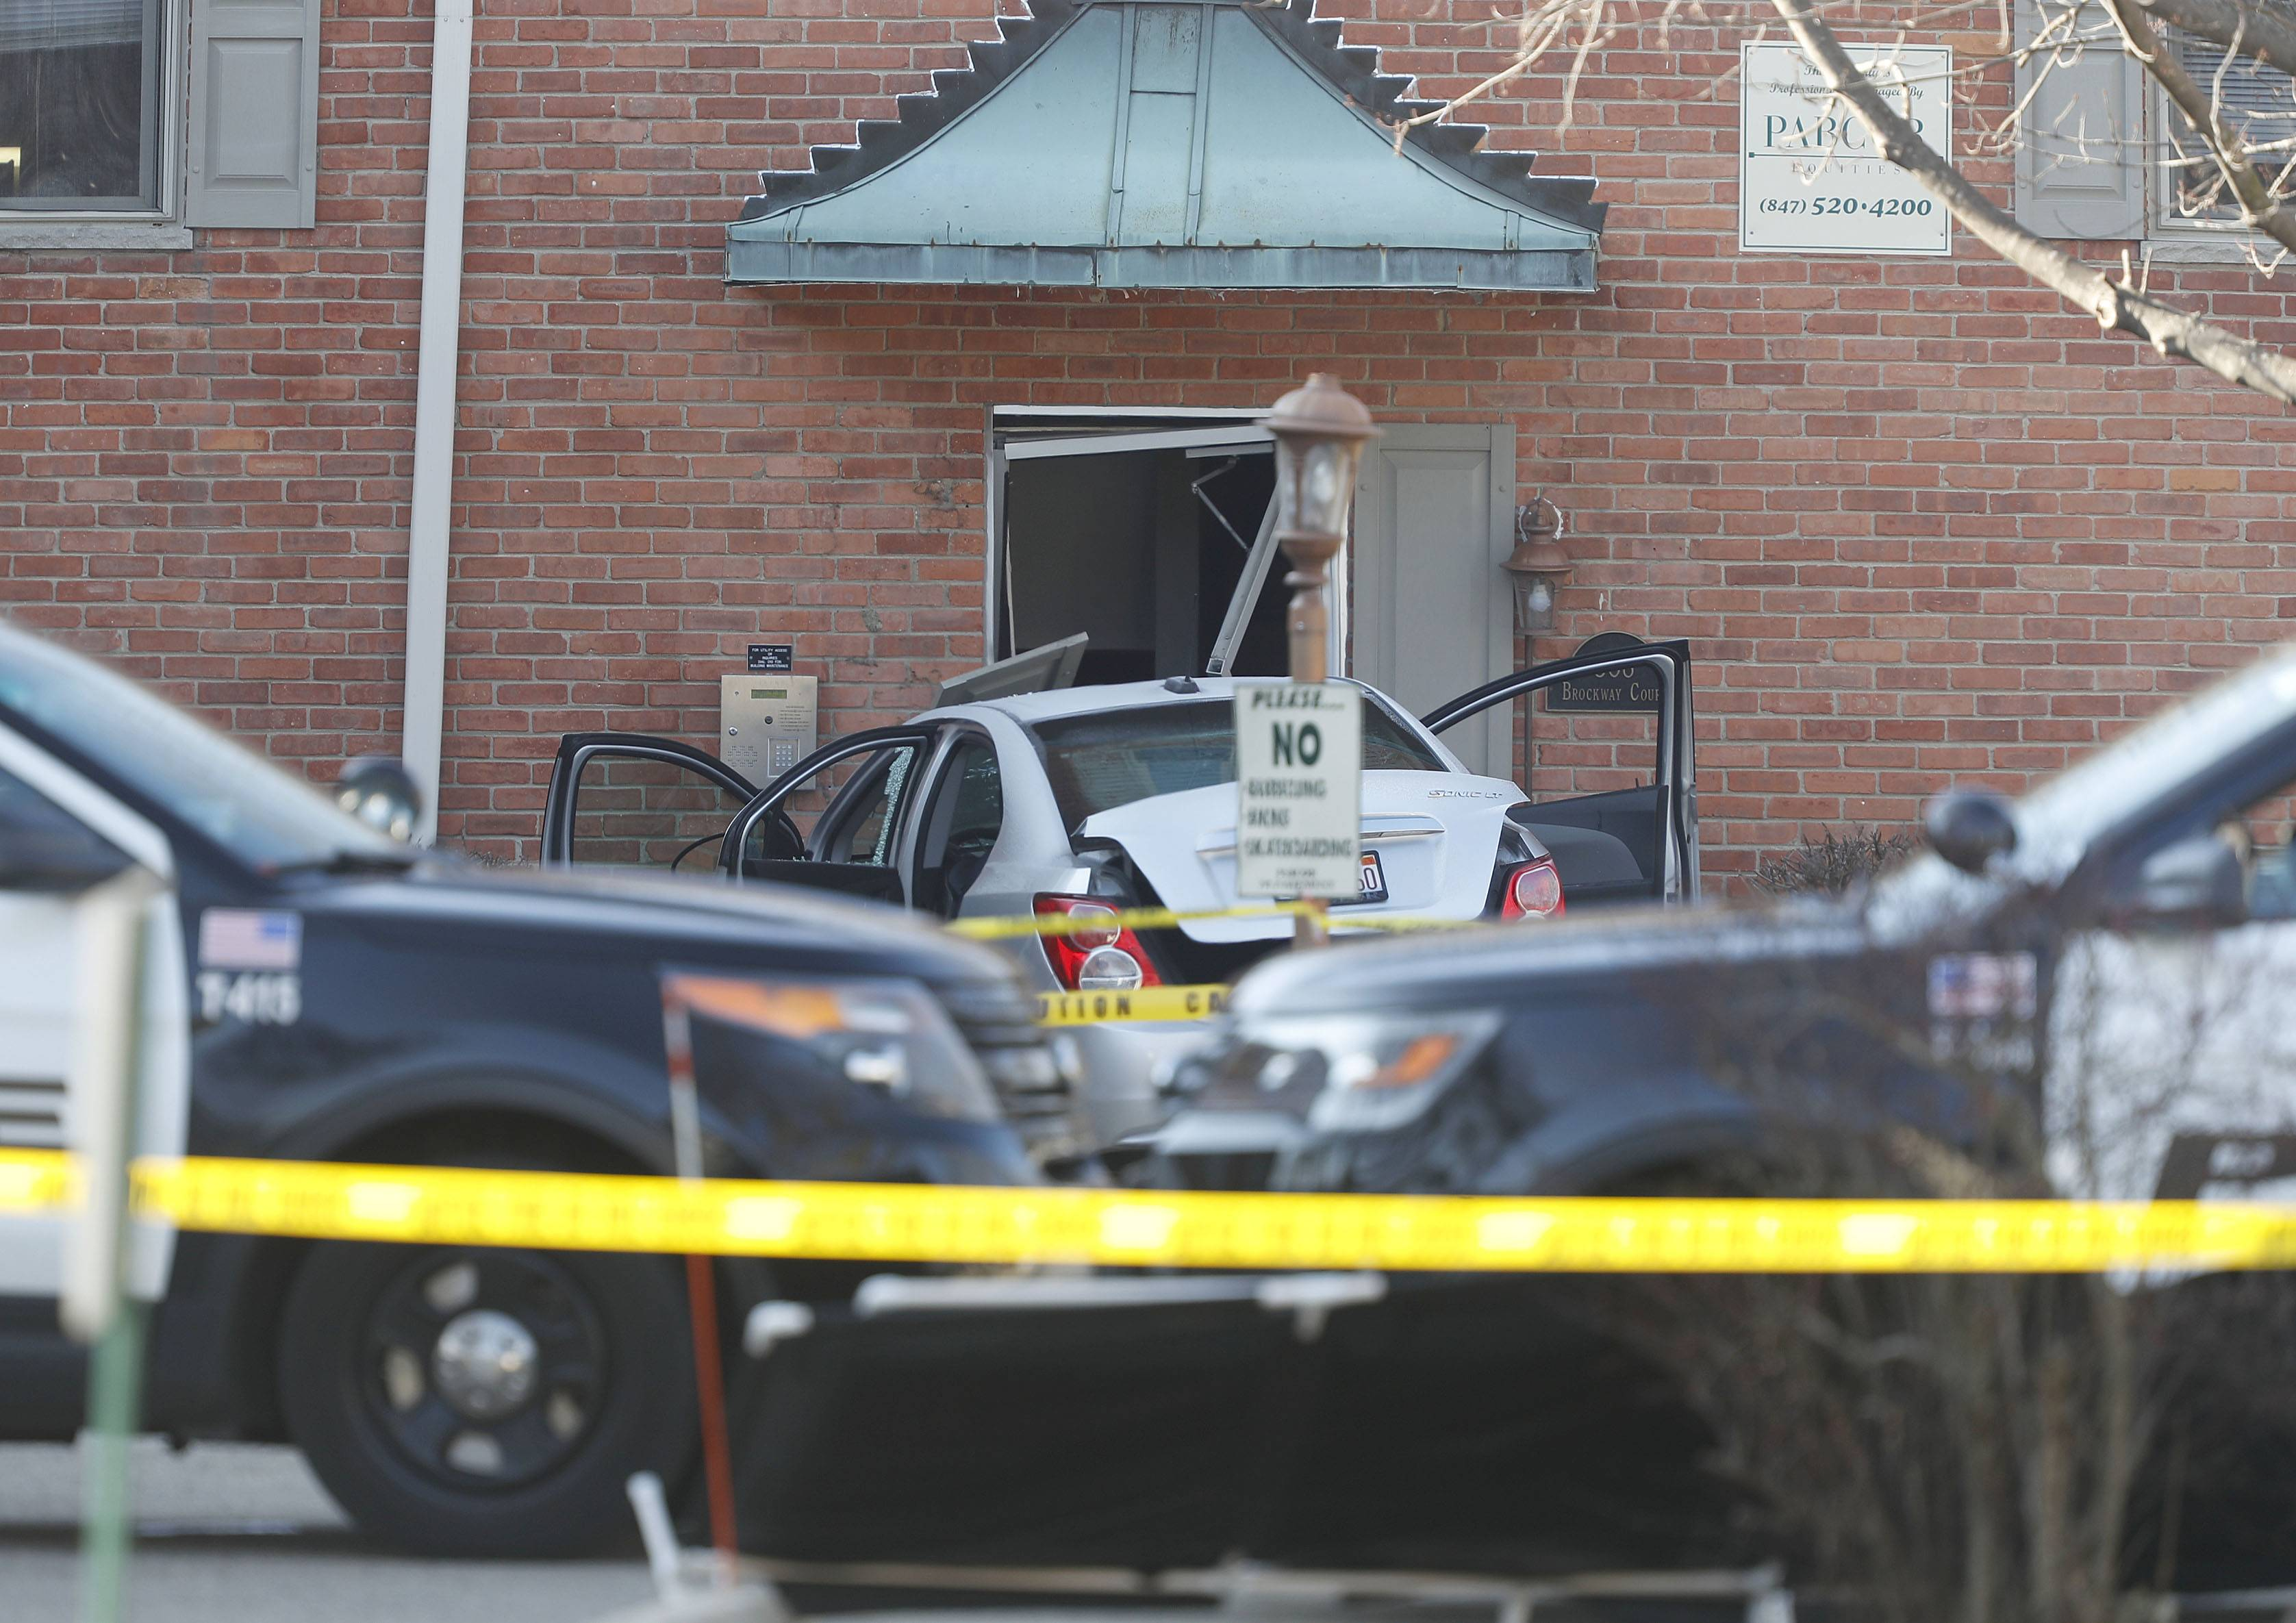 Authorities on Monday identified a 51-year-old Palatine man as the person shot and killed when he drove the silver car in the background into a police officer responding to reports of a murder early Sunday. The man's 74-year-old mother later was found dead in his apartment, authorities said.